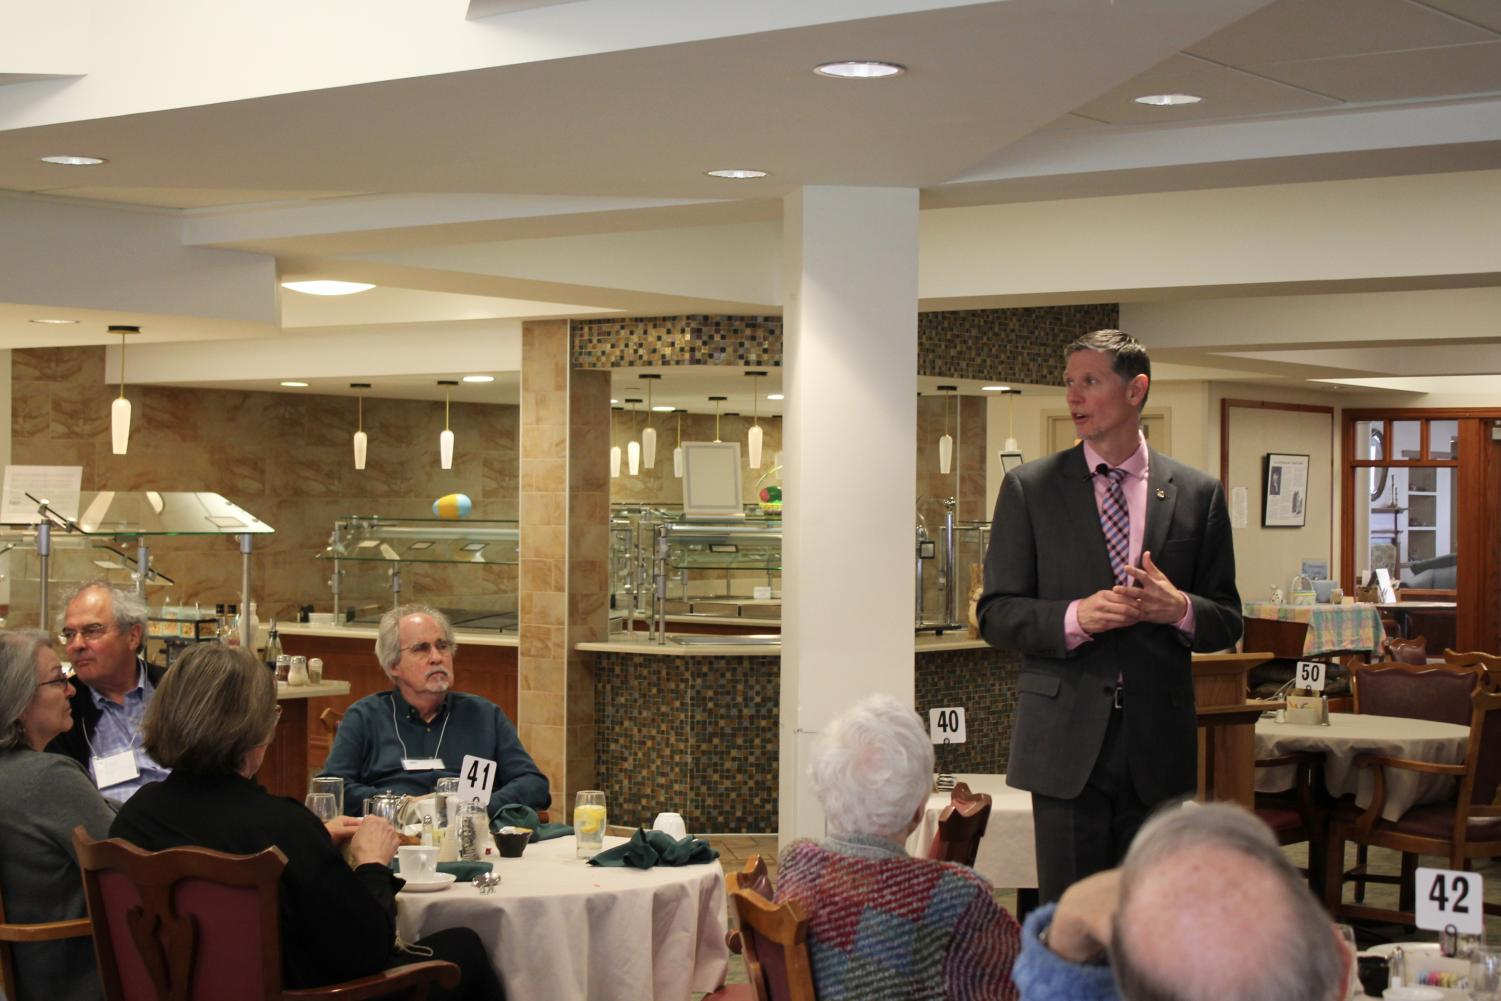 Kendal at Oberlin hosts the Oberlin Chapter of the League of Women Voters' monthly Legislative Luncheon, where Ohio State Representative Joe Miller discussed issues he dealt with in the opening months of his first term.